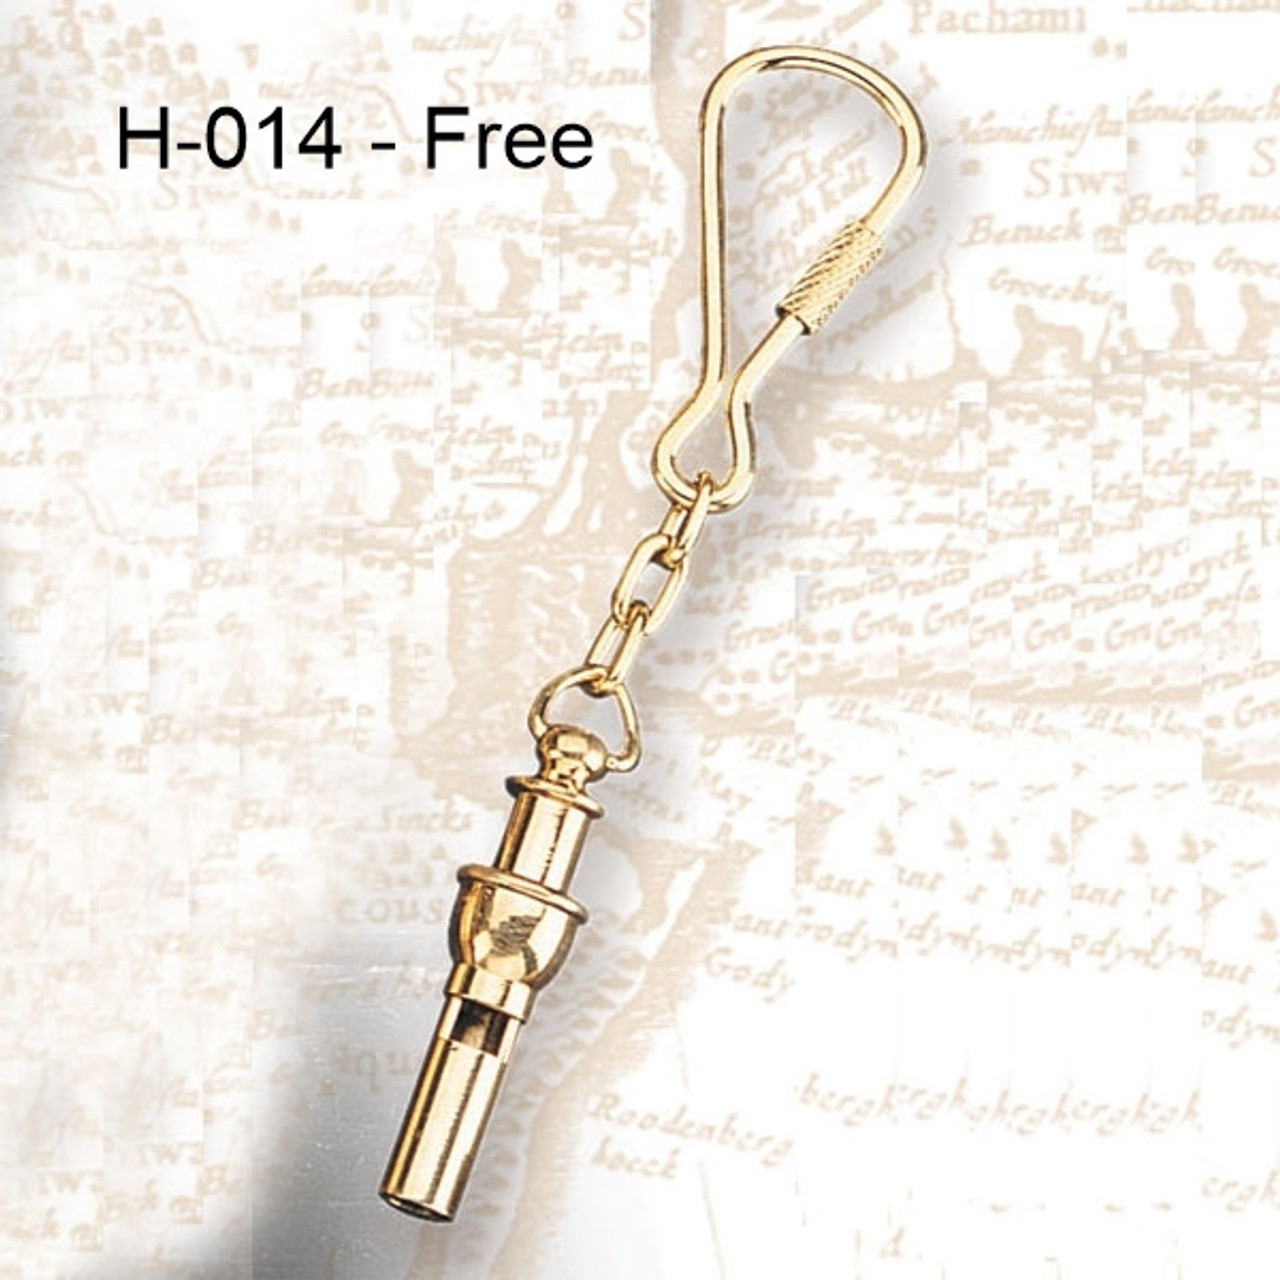 H - 014 -  Bosun's Whistle Key Chain Option Free with Purchase of (MP-2047) 3 Dimensional Compass Rose Wooden Wall Art with LED Back Lighting